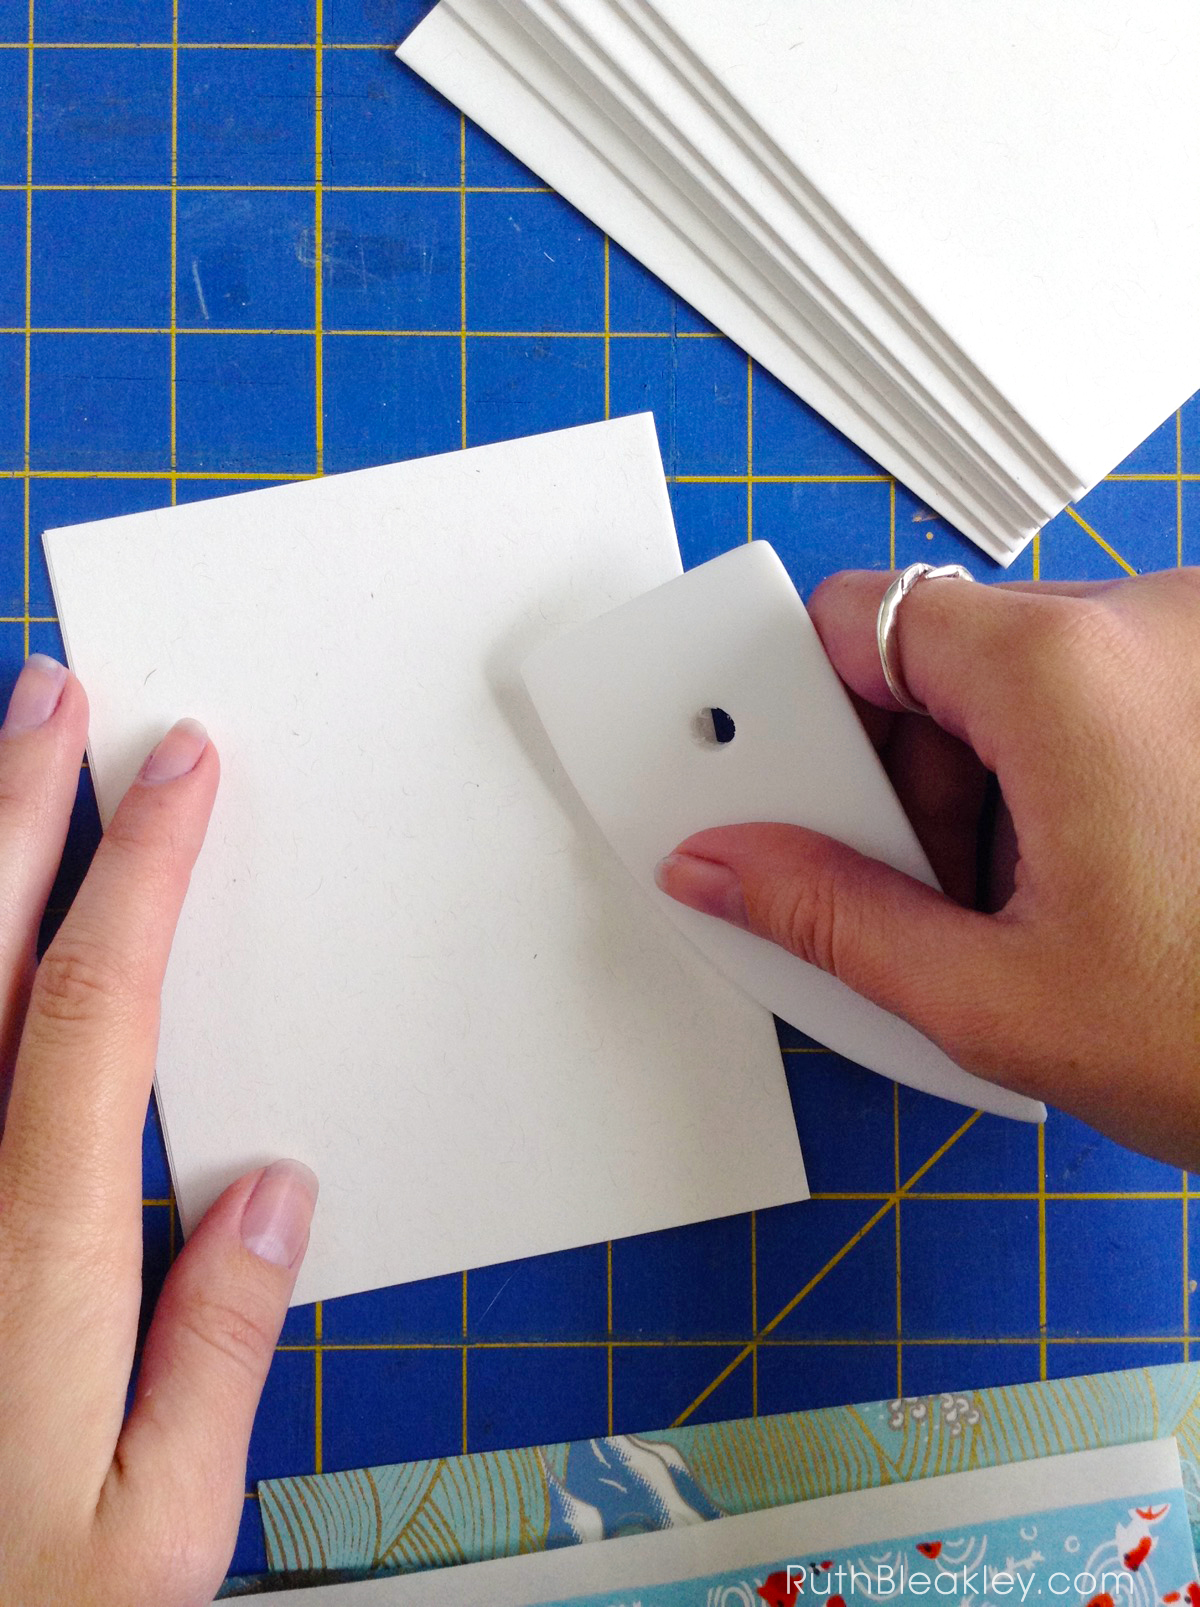 Ergonomic rib folder is a great shape for folding paper